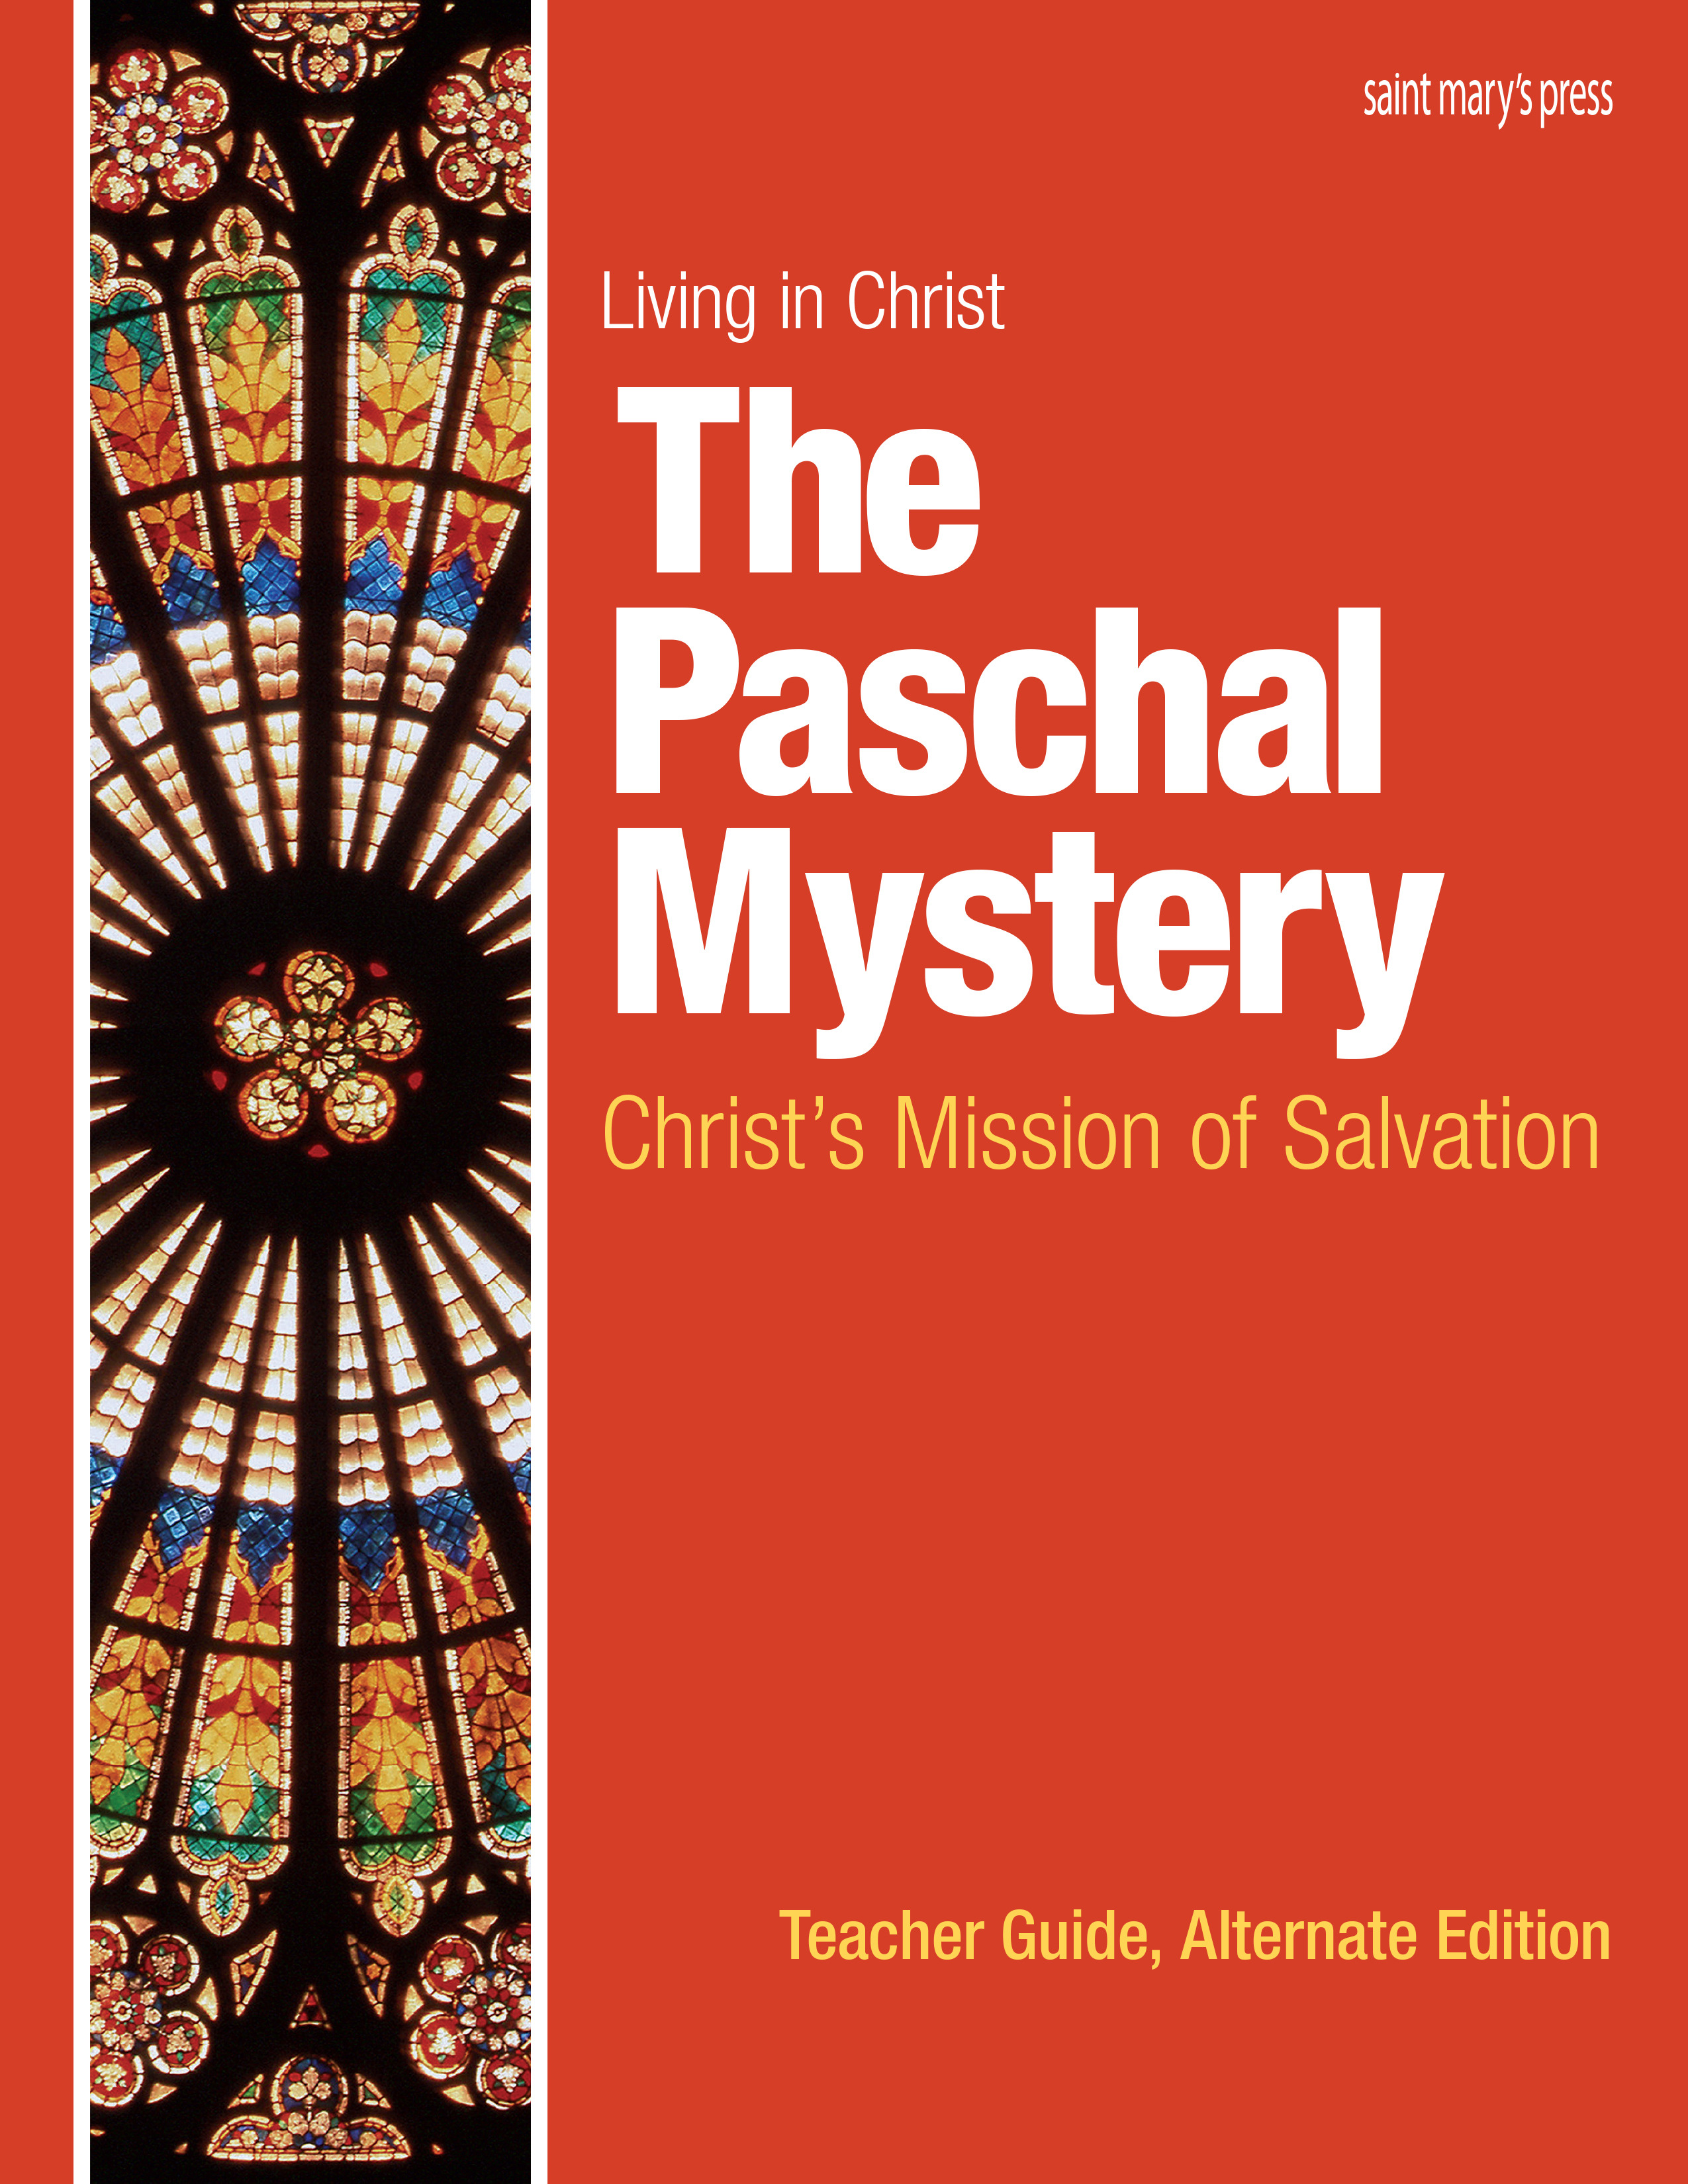 The Paschal Mystery: Christ's Mission of Salvation, Teacher Guide ‒ Alternate Edition